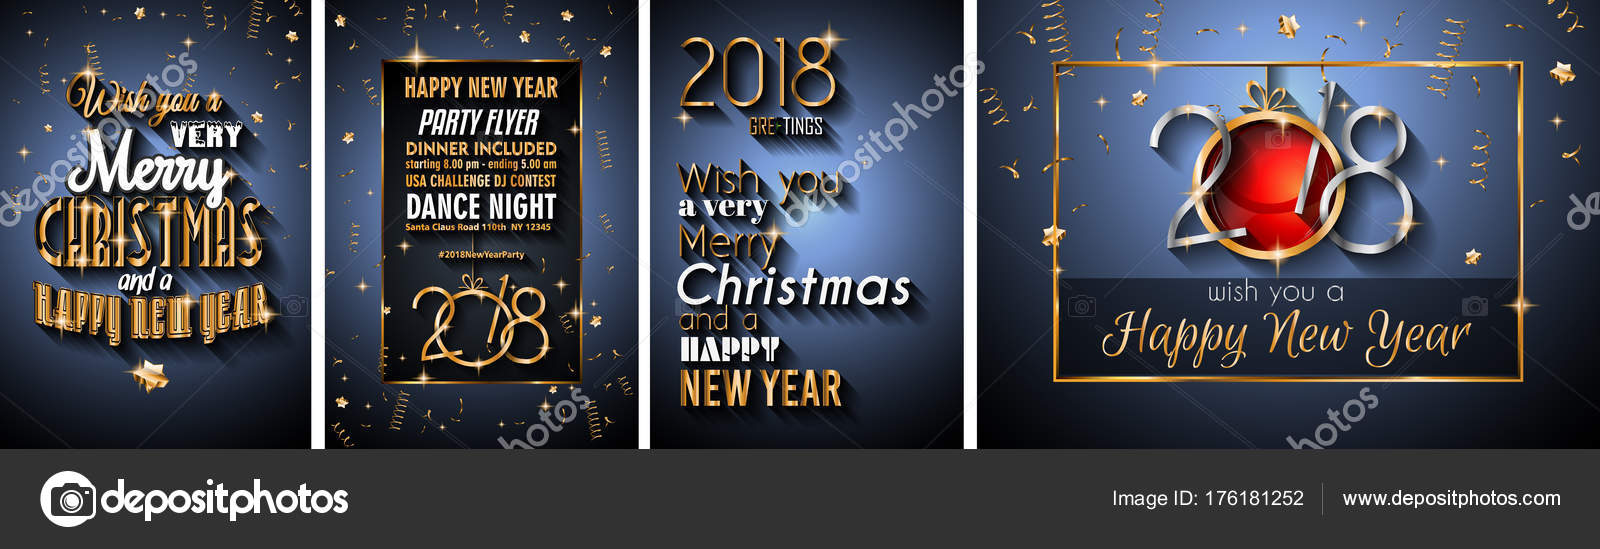 2018 happy new year background for your seasonal flyers and greetings card or christmas themed invitations vector by davidarts